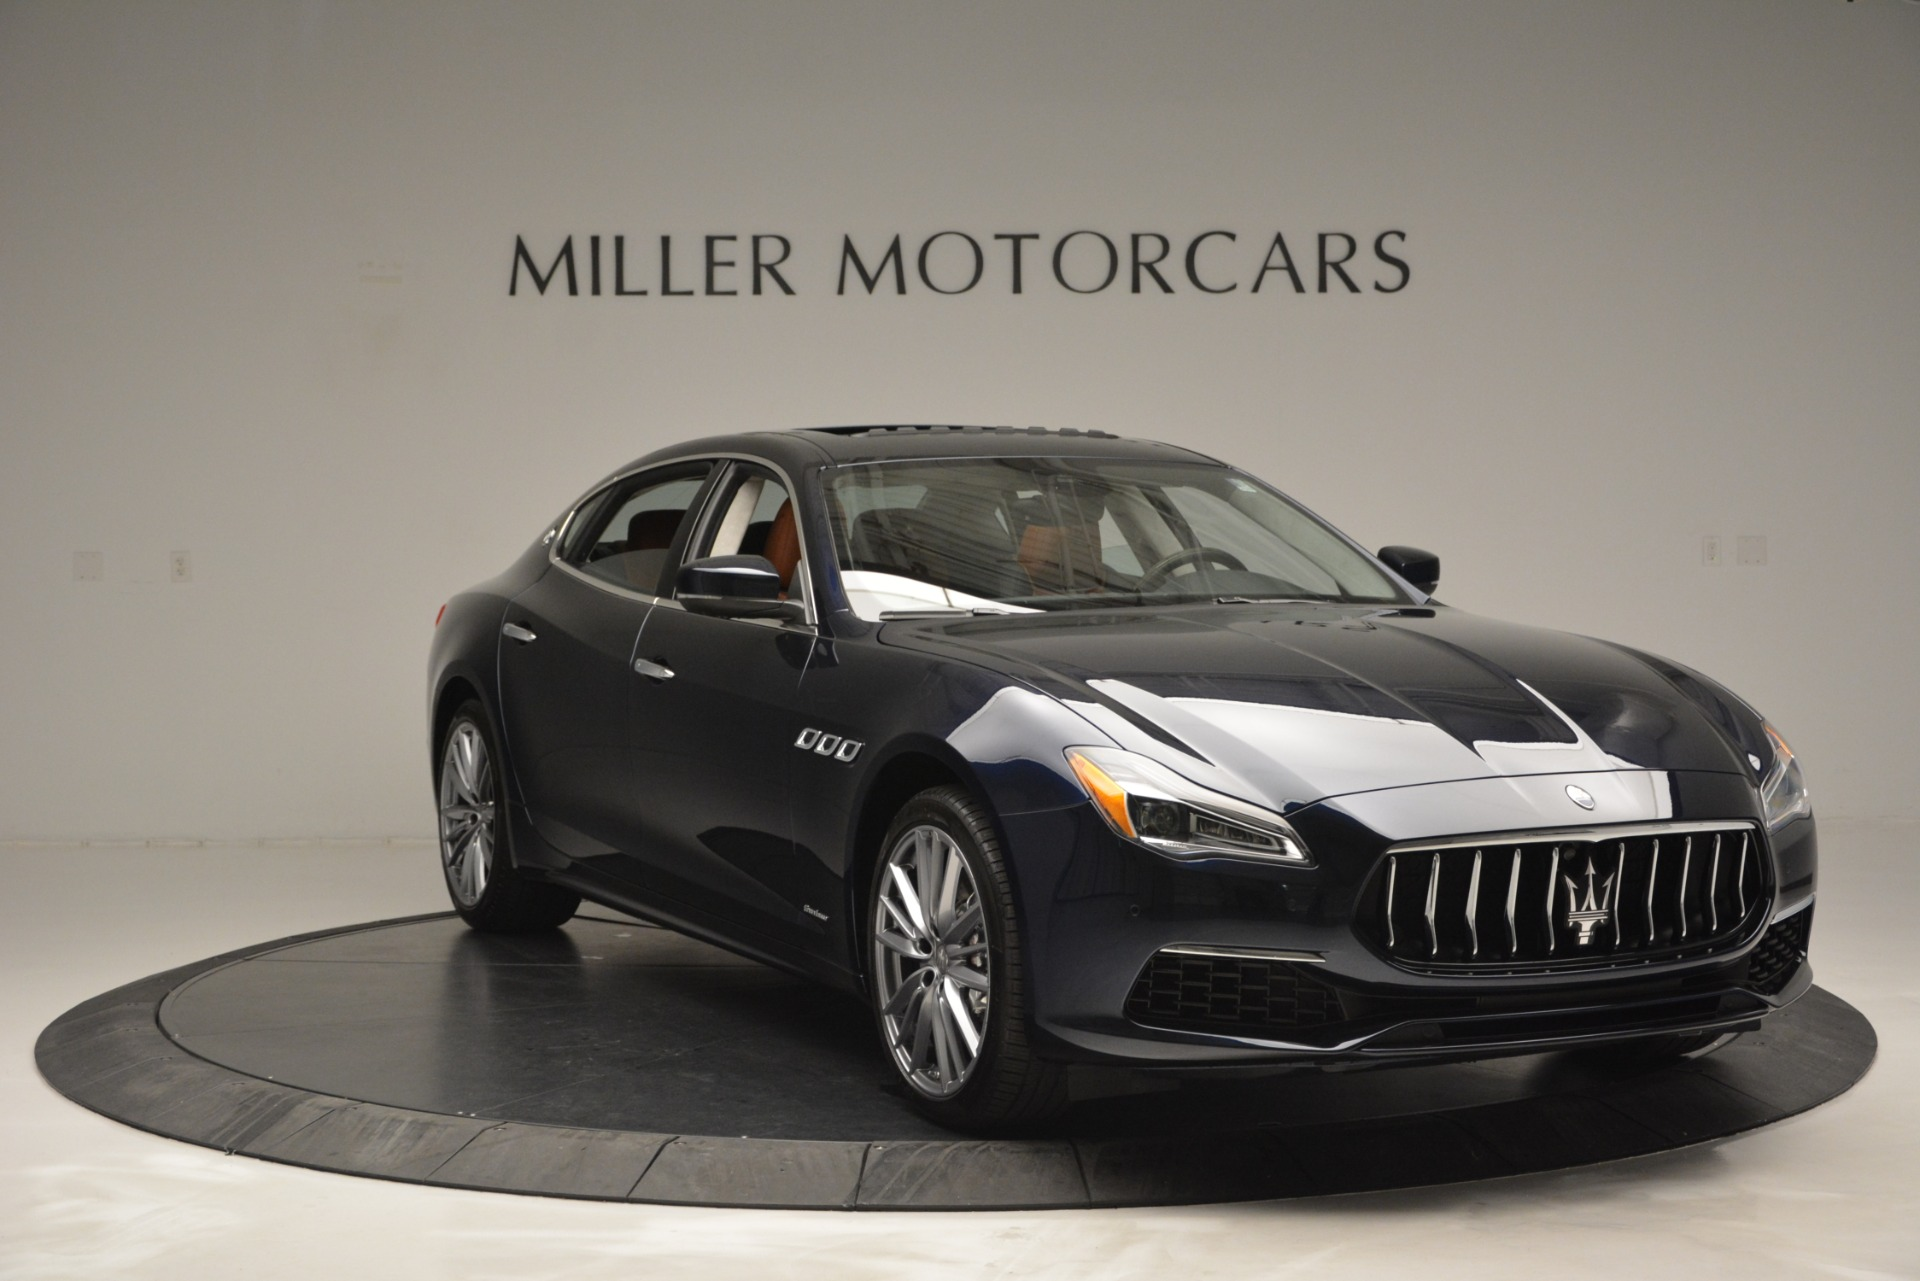 New 2019 Maserati Quattroporte S Q4 GranLusso Edizione Nobile For Sale In Greenwich, CT 2898_p17